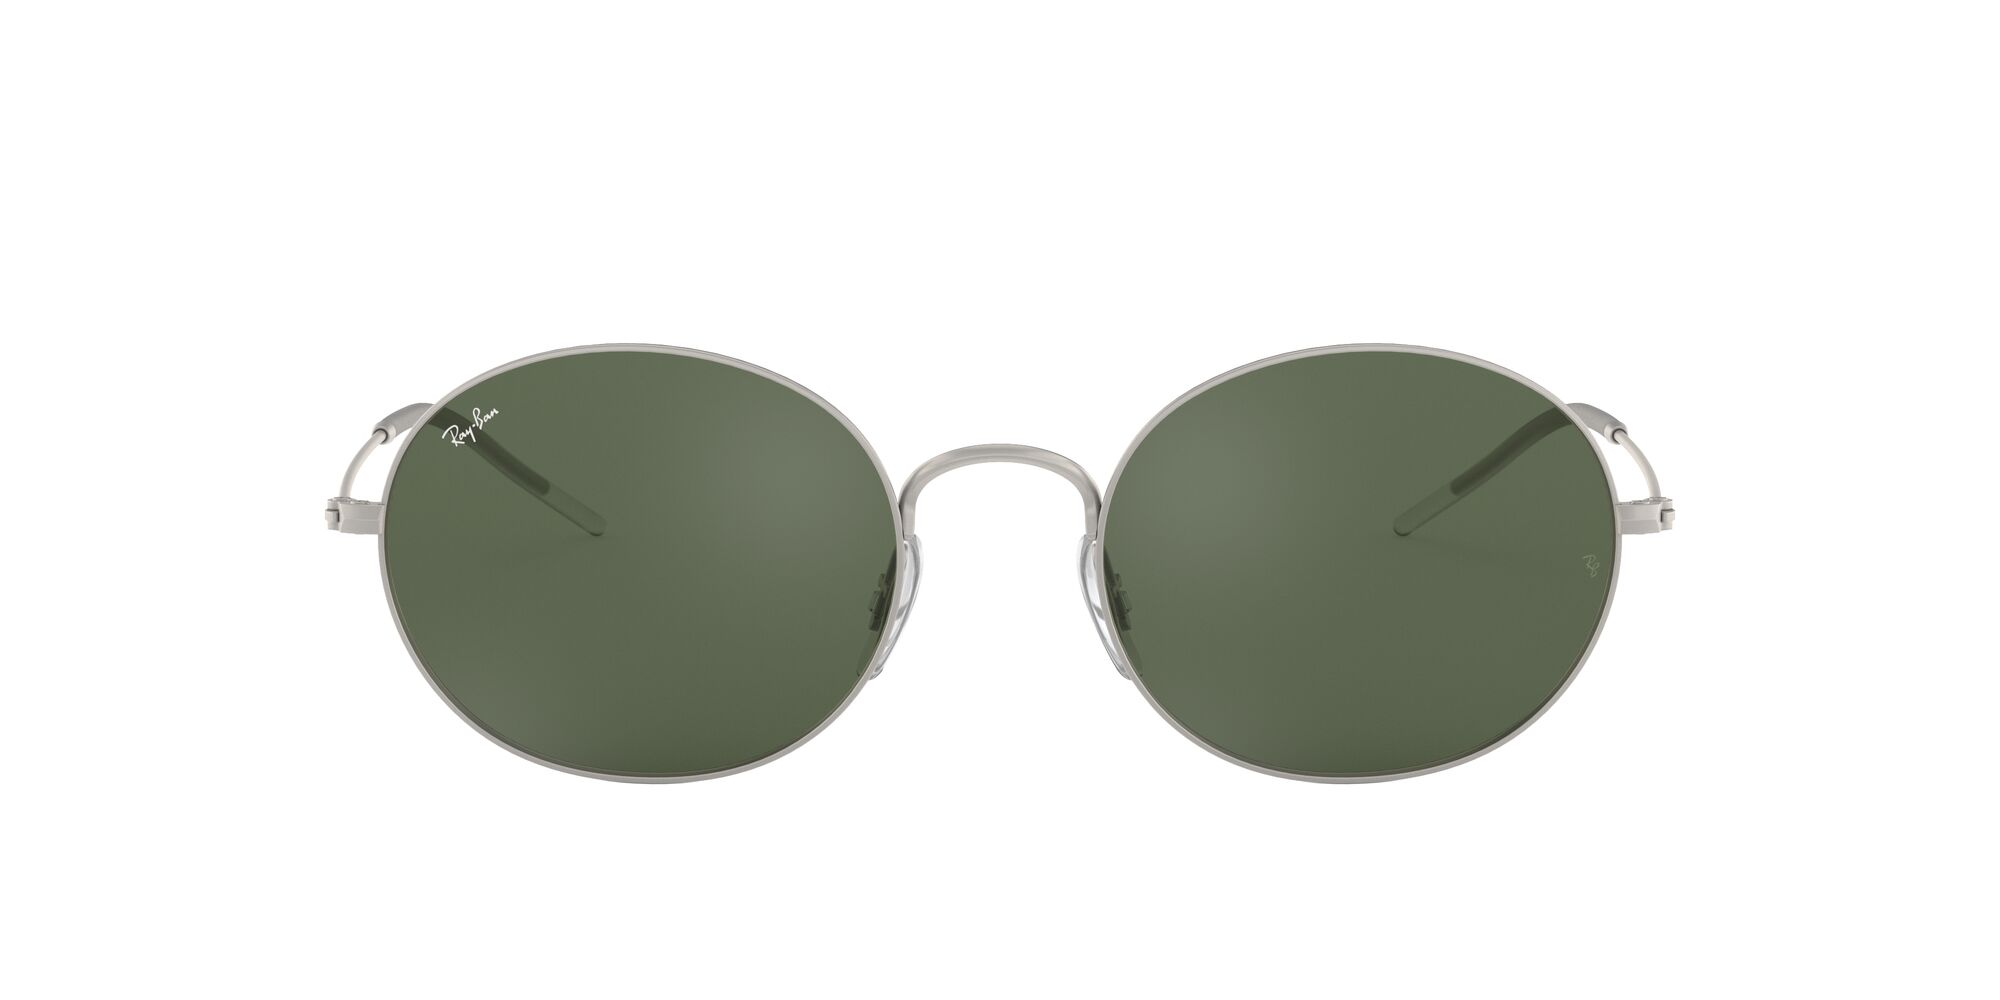 Front Ray-Ban Ray-Ban 0RB3594 911671 53/20 Zilver/Groen